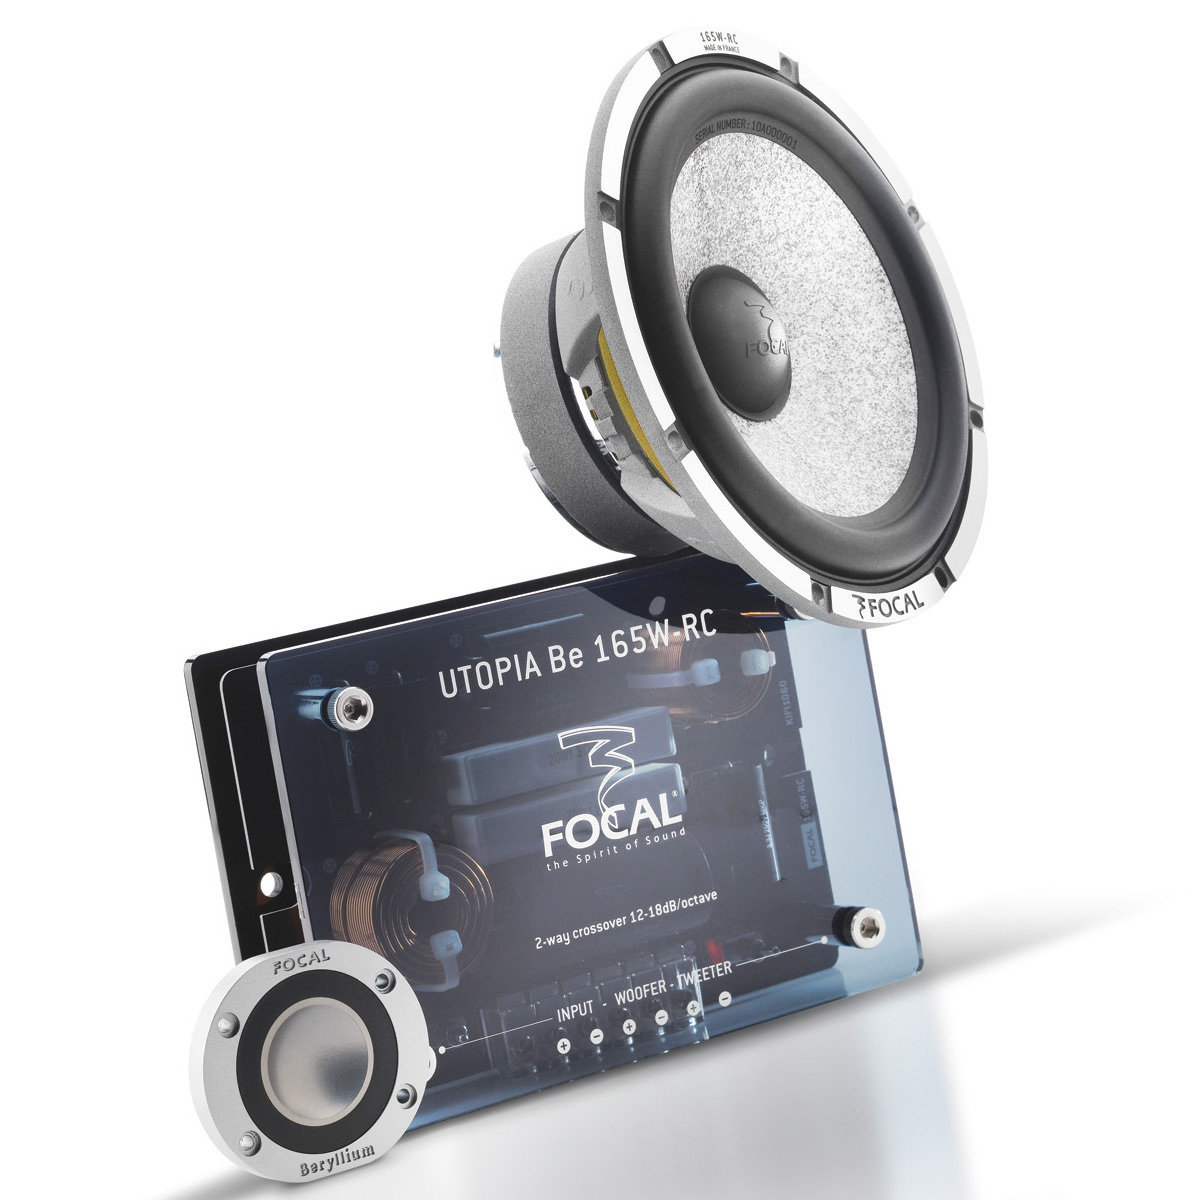 Focal 165 W-RC 2-Way Component Speakers | World Wide Stereo